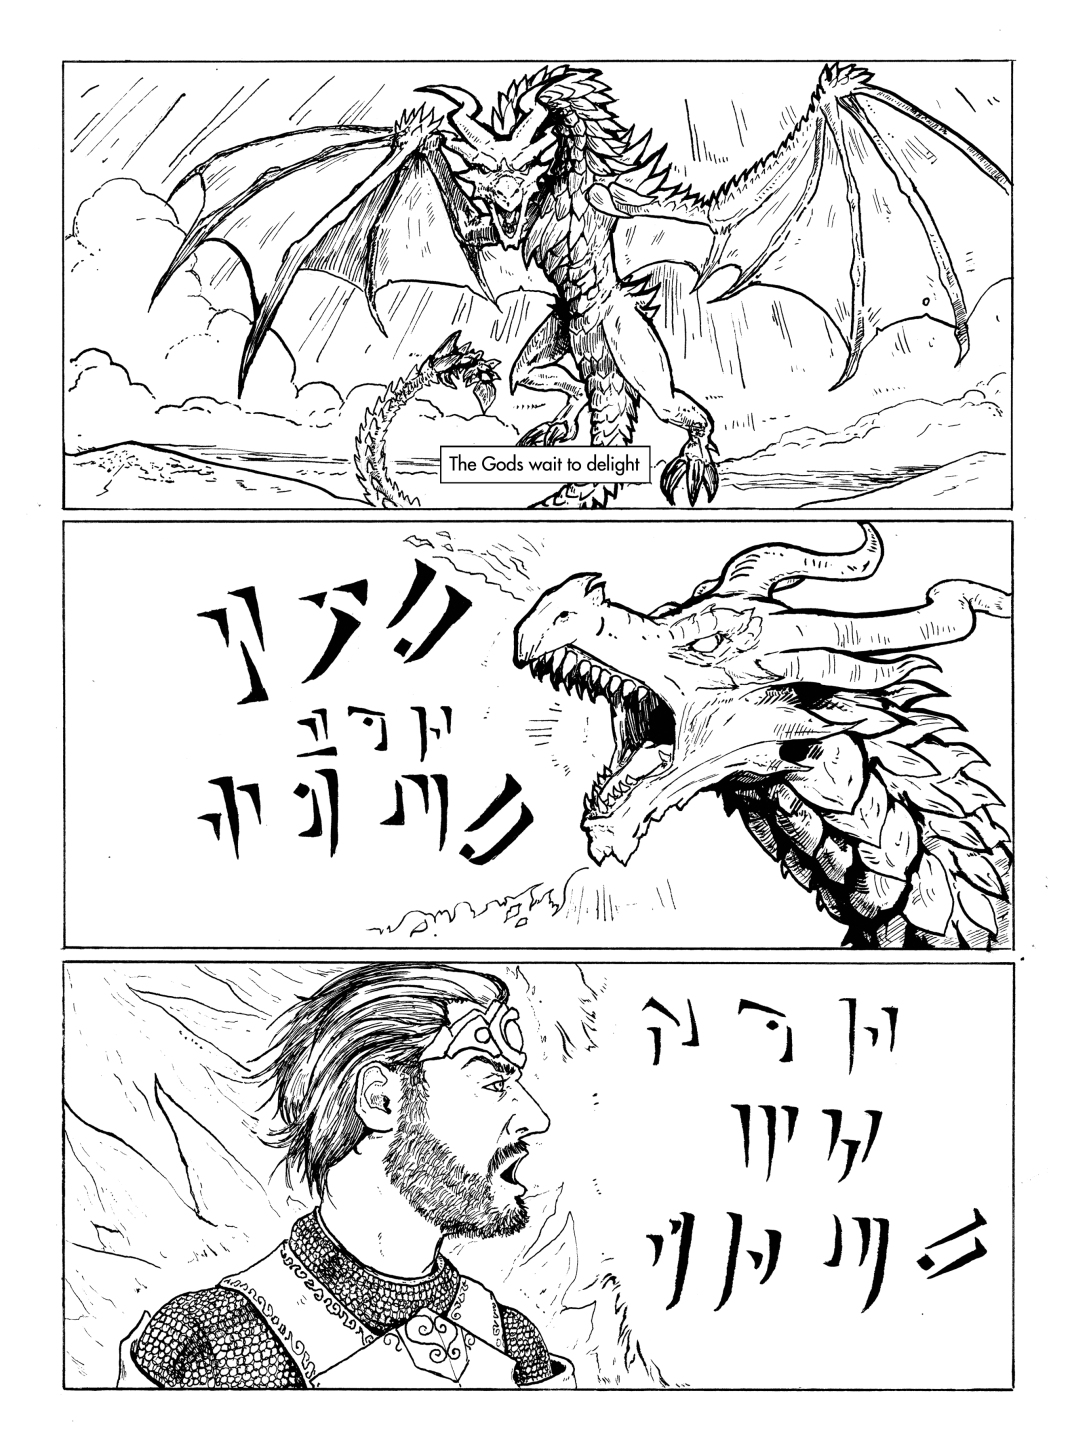 Skyrim Pages 13